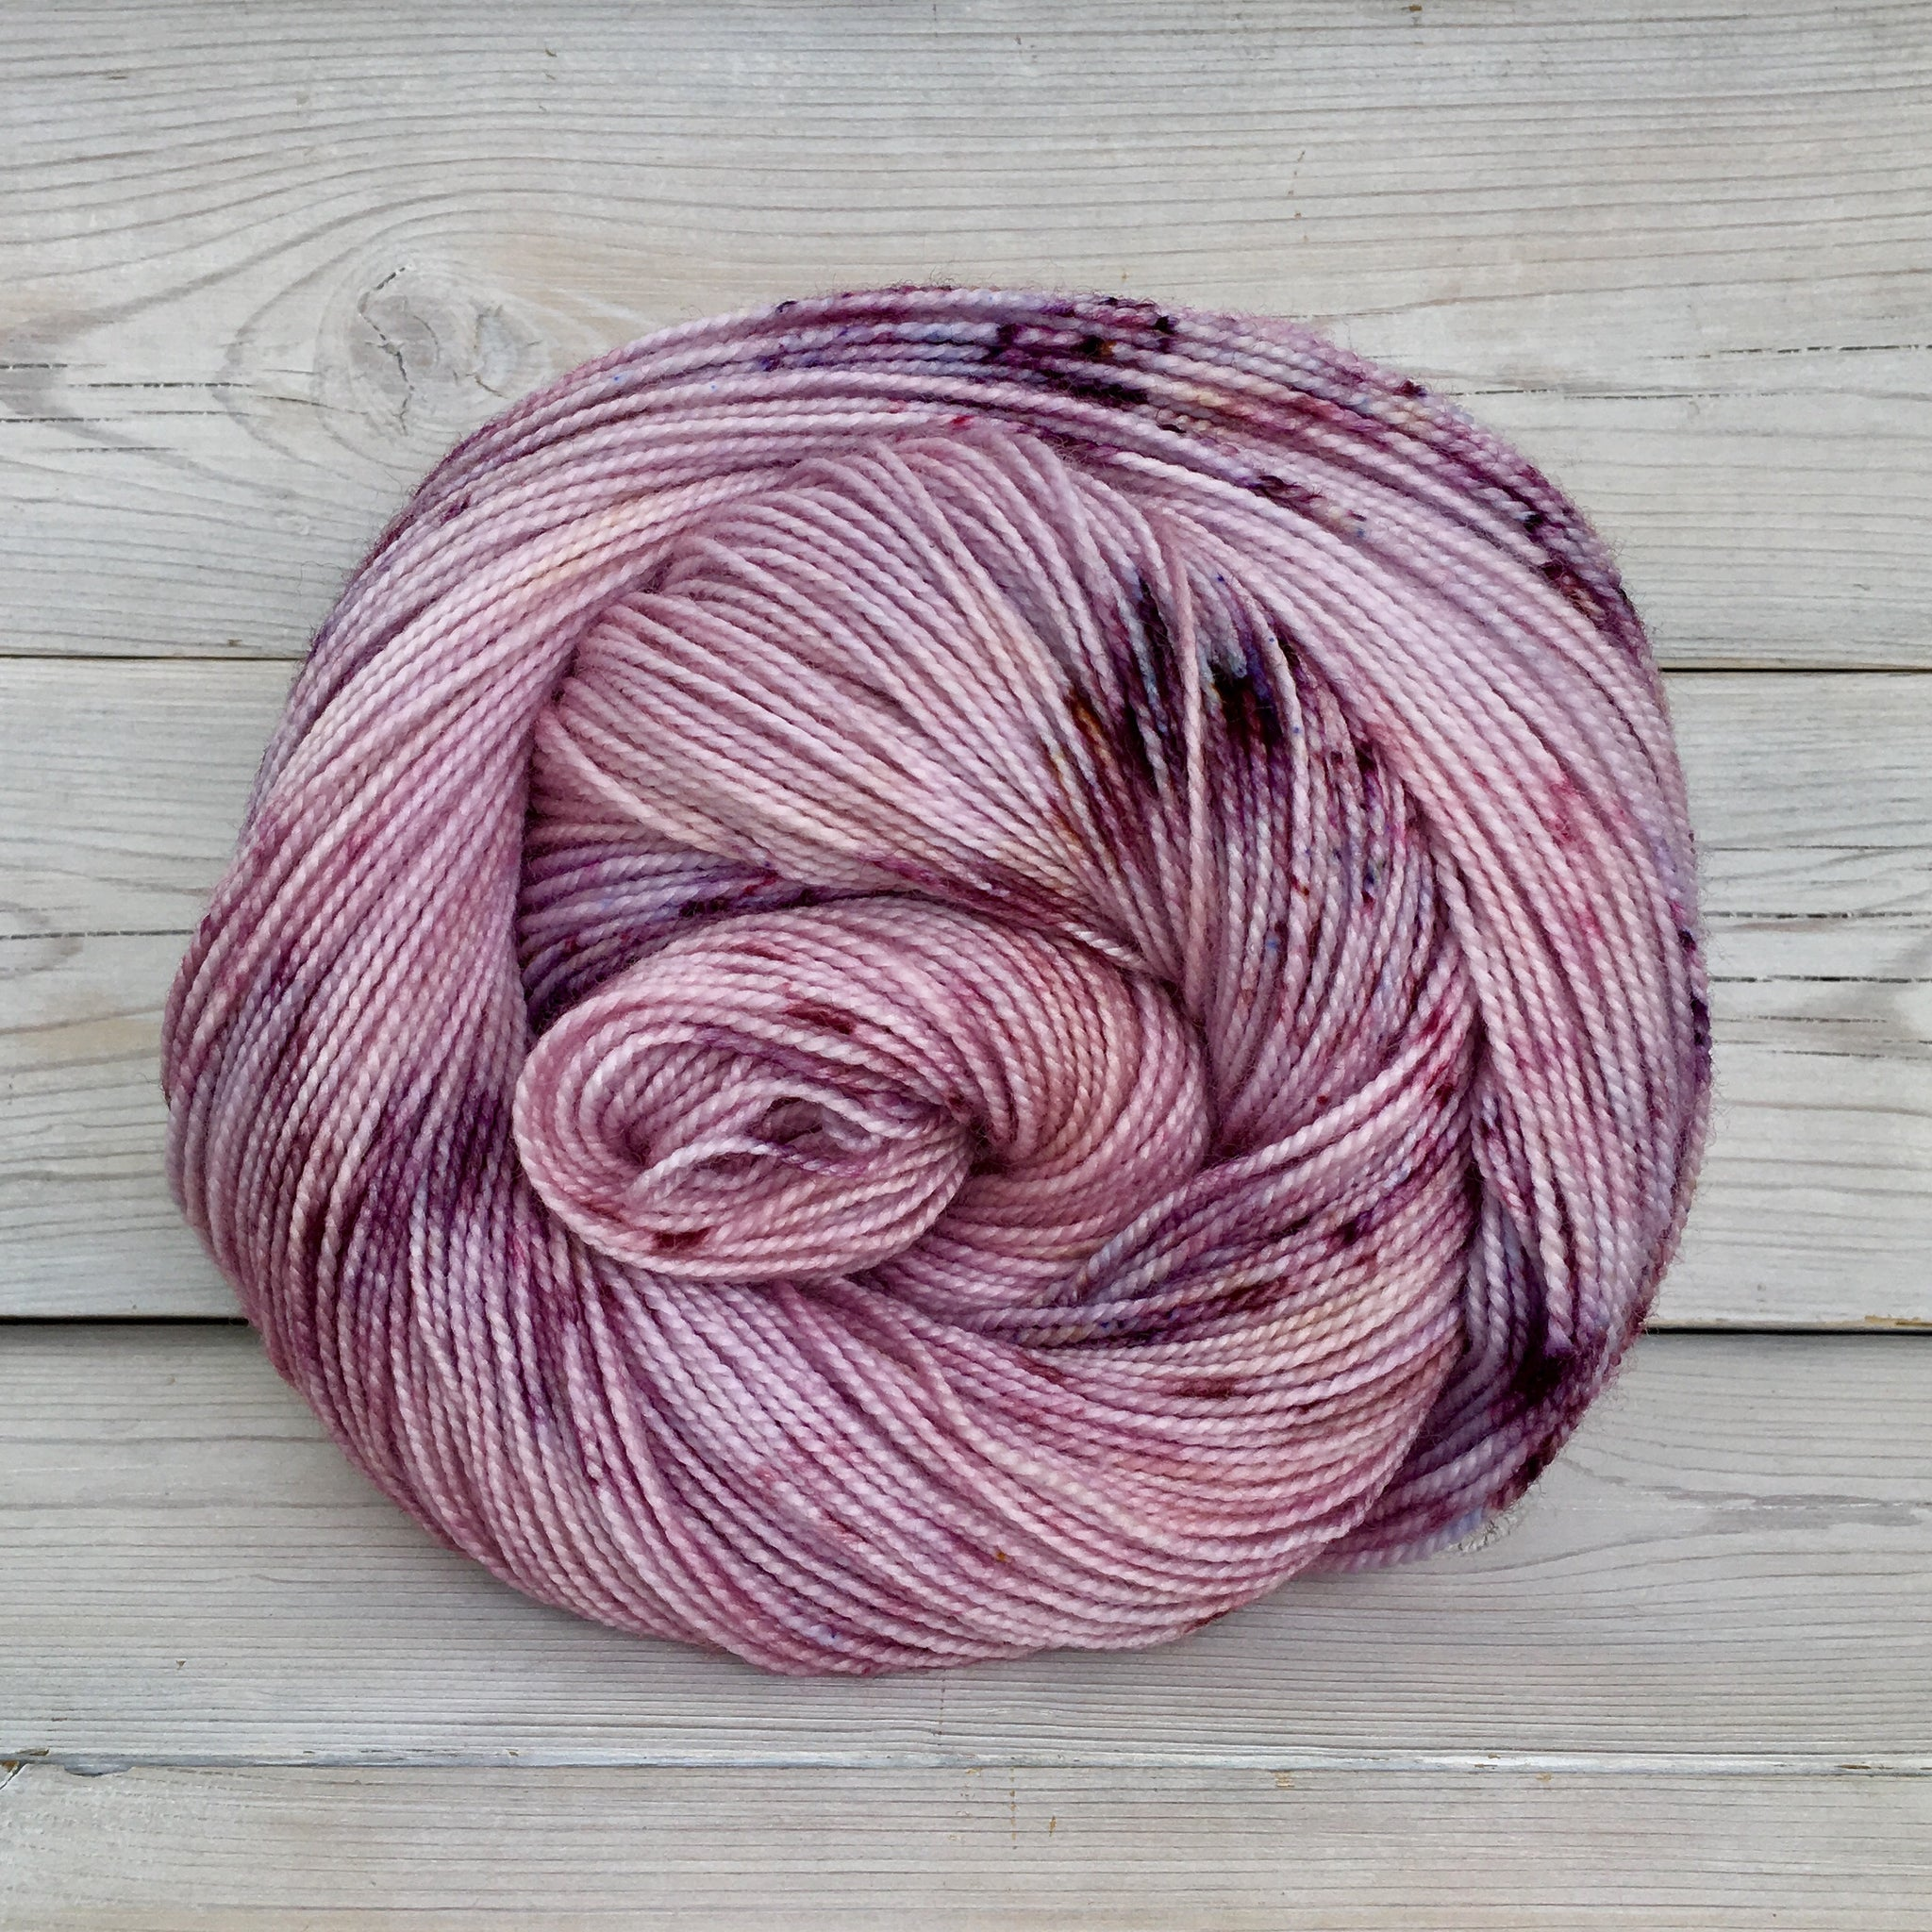 Colorway: Bloom | Dyed to Order Yarn